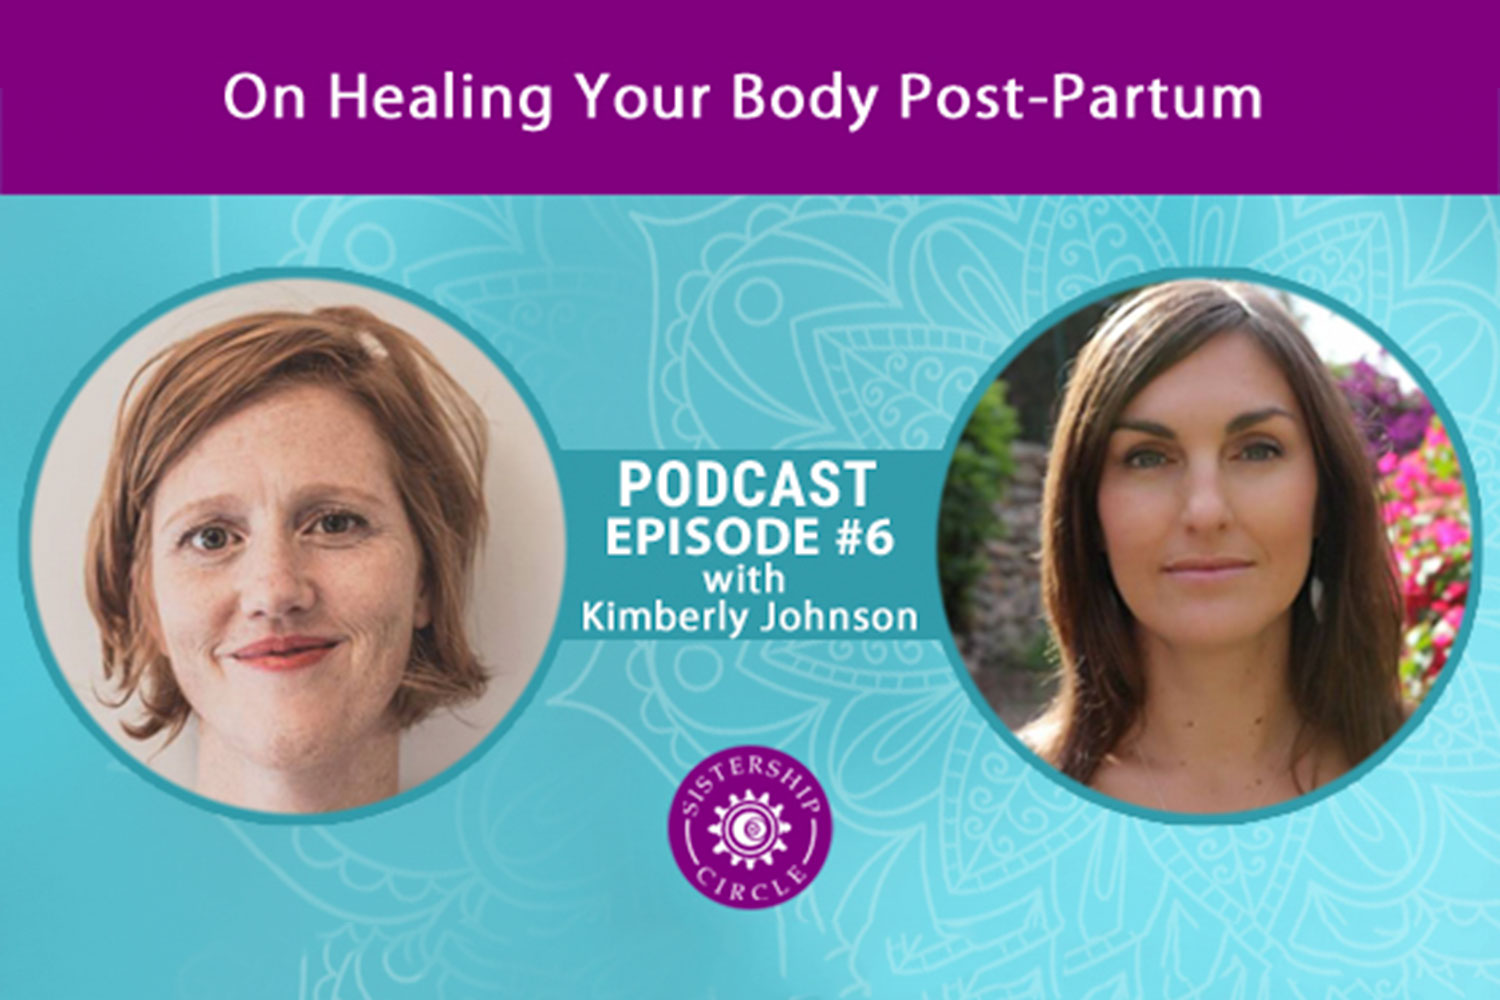 SISTERSHIP CIRCLE PODCAST - EP6: Kimberly Johnson on Healing Your Body Postpartum